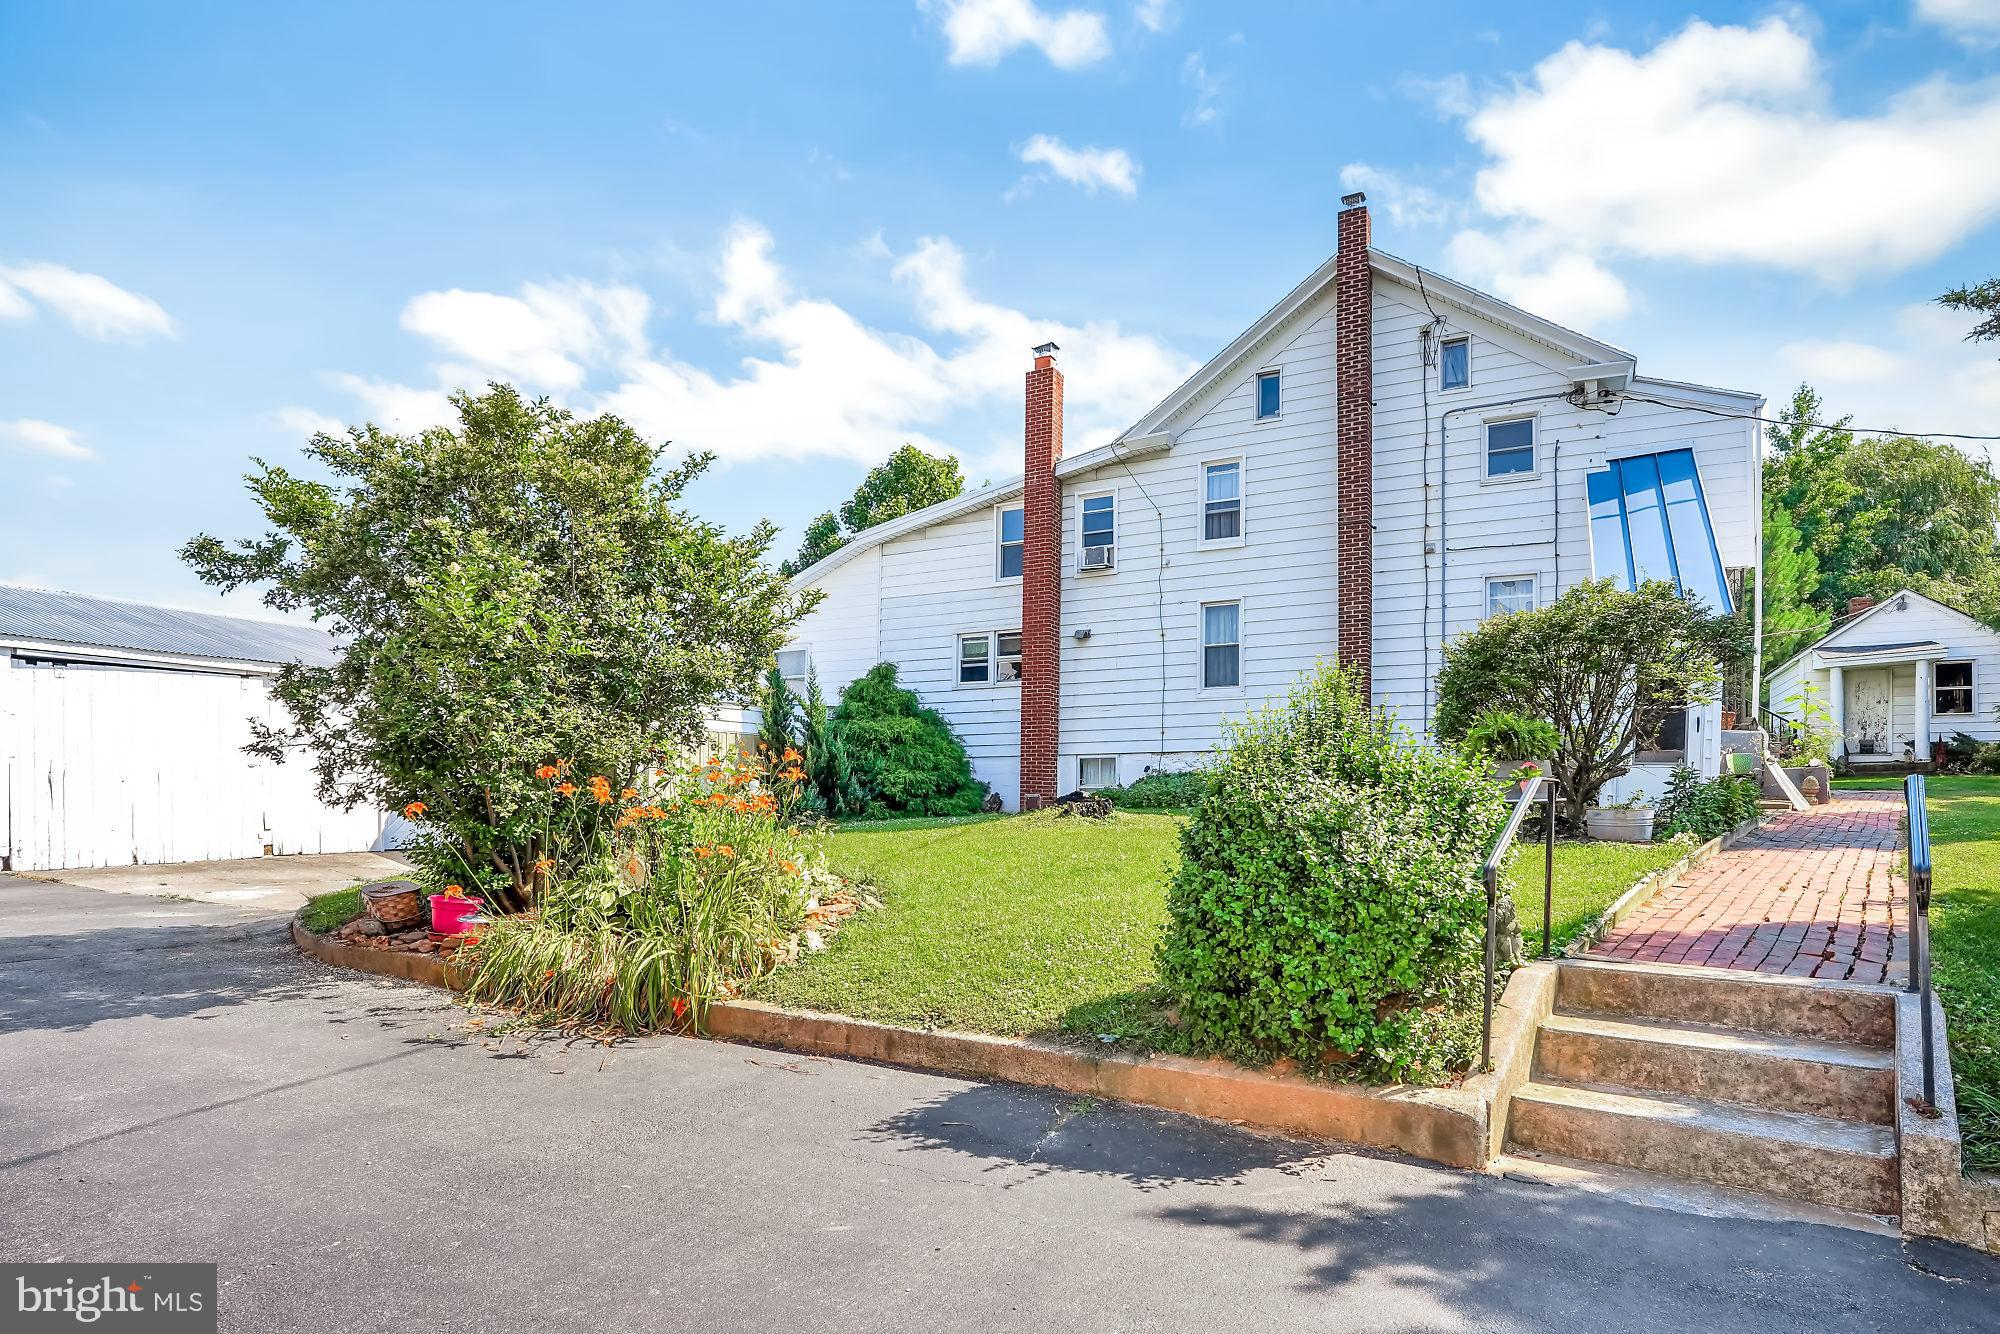 815 MANOR ROAD, WINDSOR, PA 17366